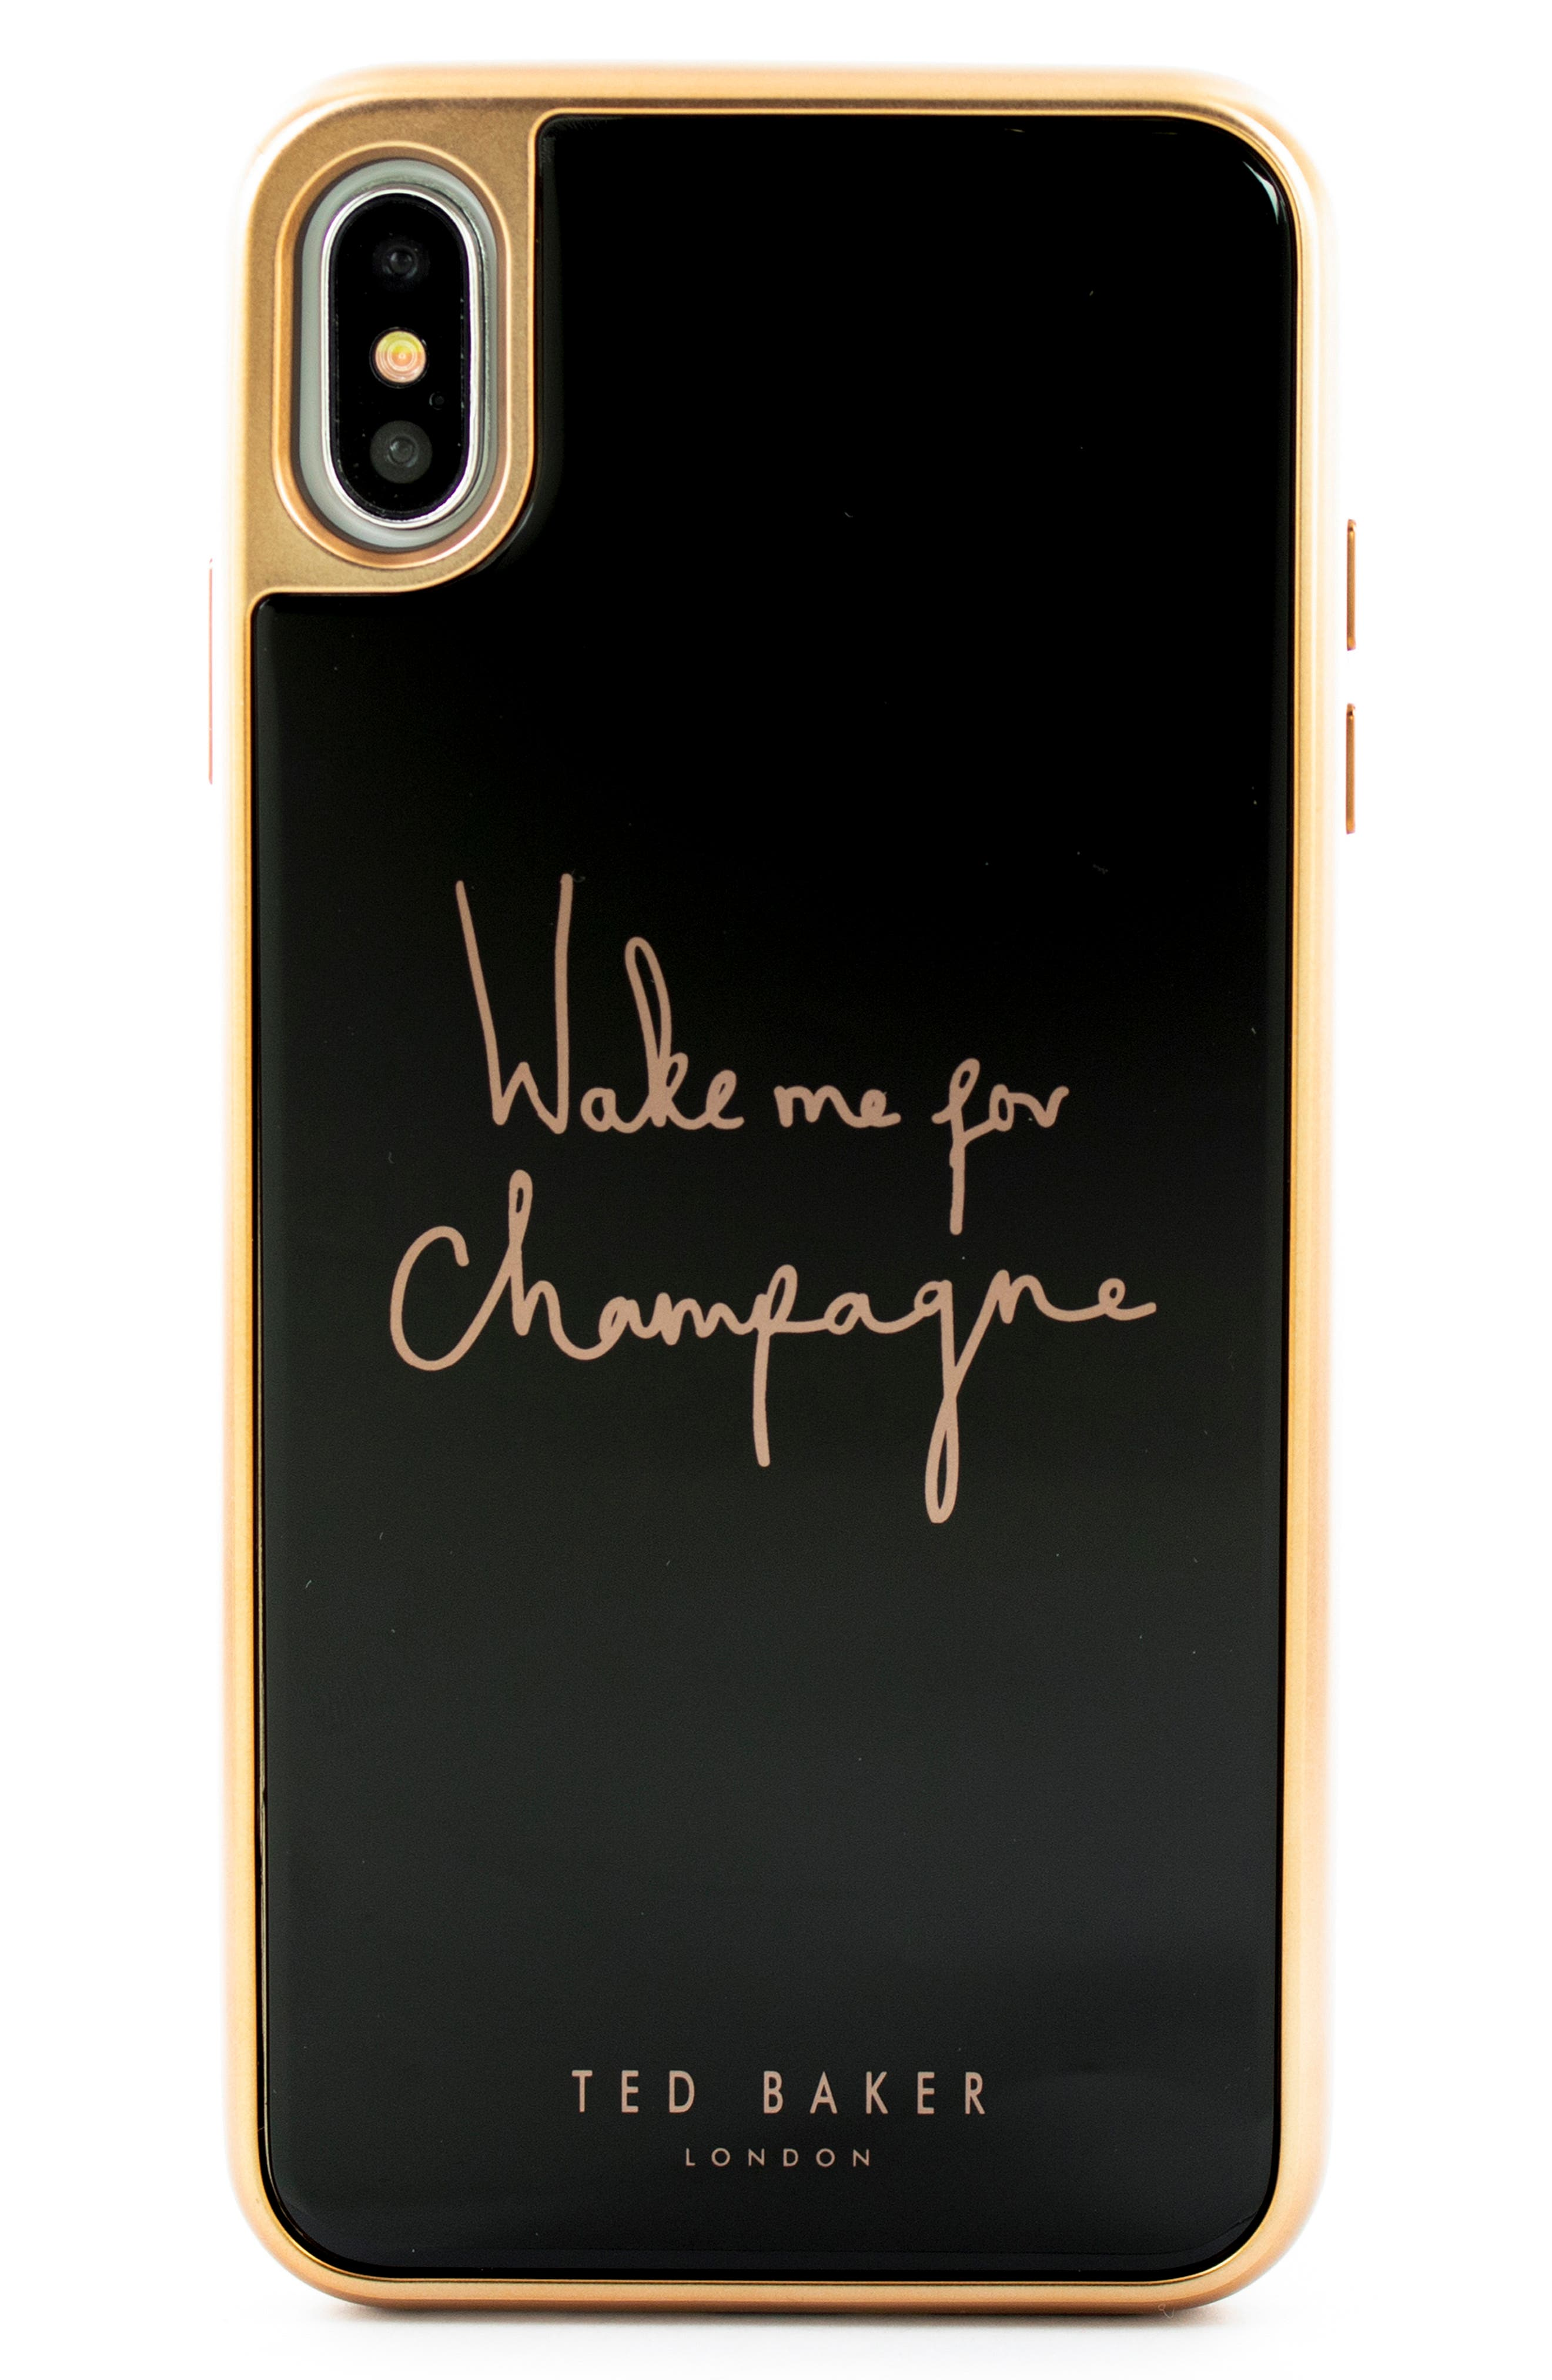 TED BAKER LONDON,                             Champagne iPhone X/Xs/Xs Max & XR Case,                             Main thumbnail 1, color,                             BLACK